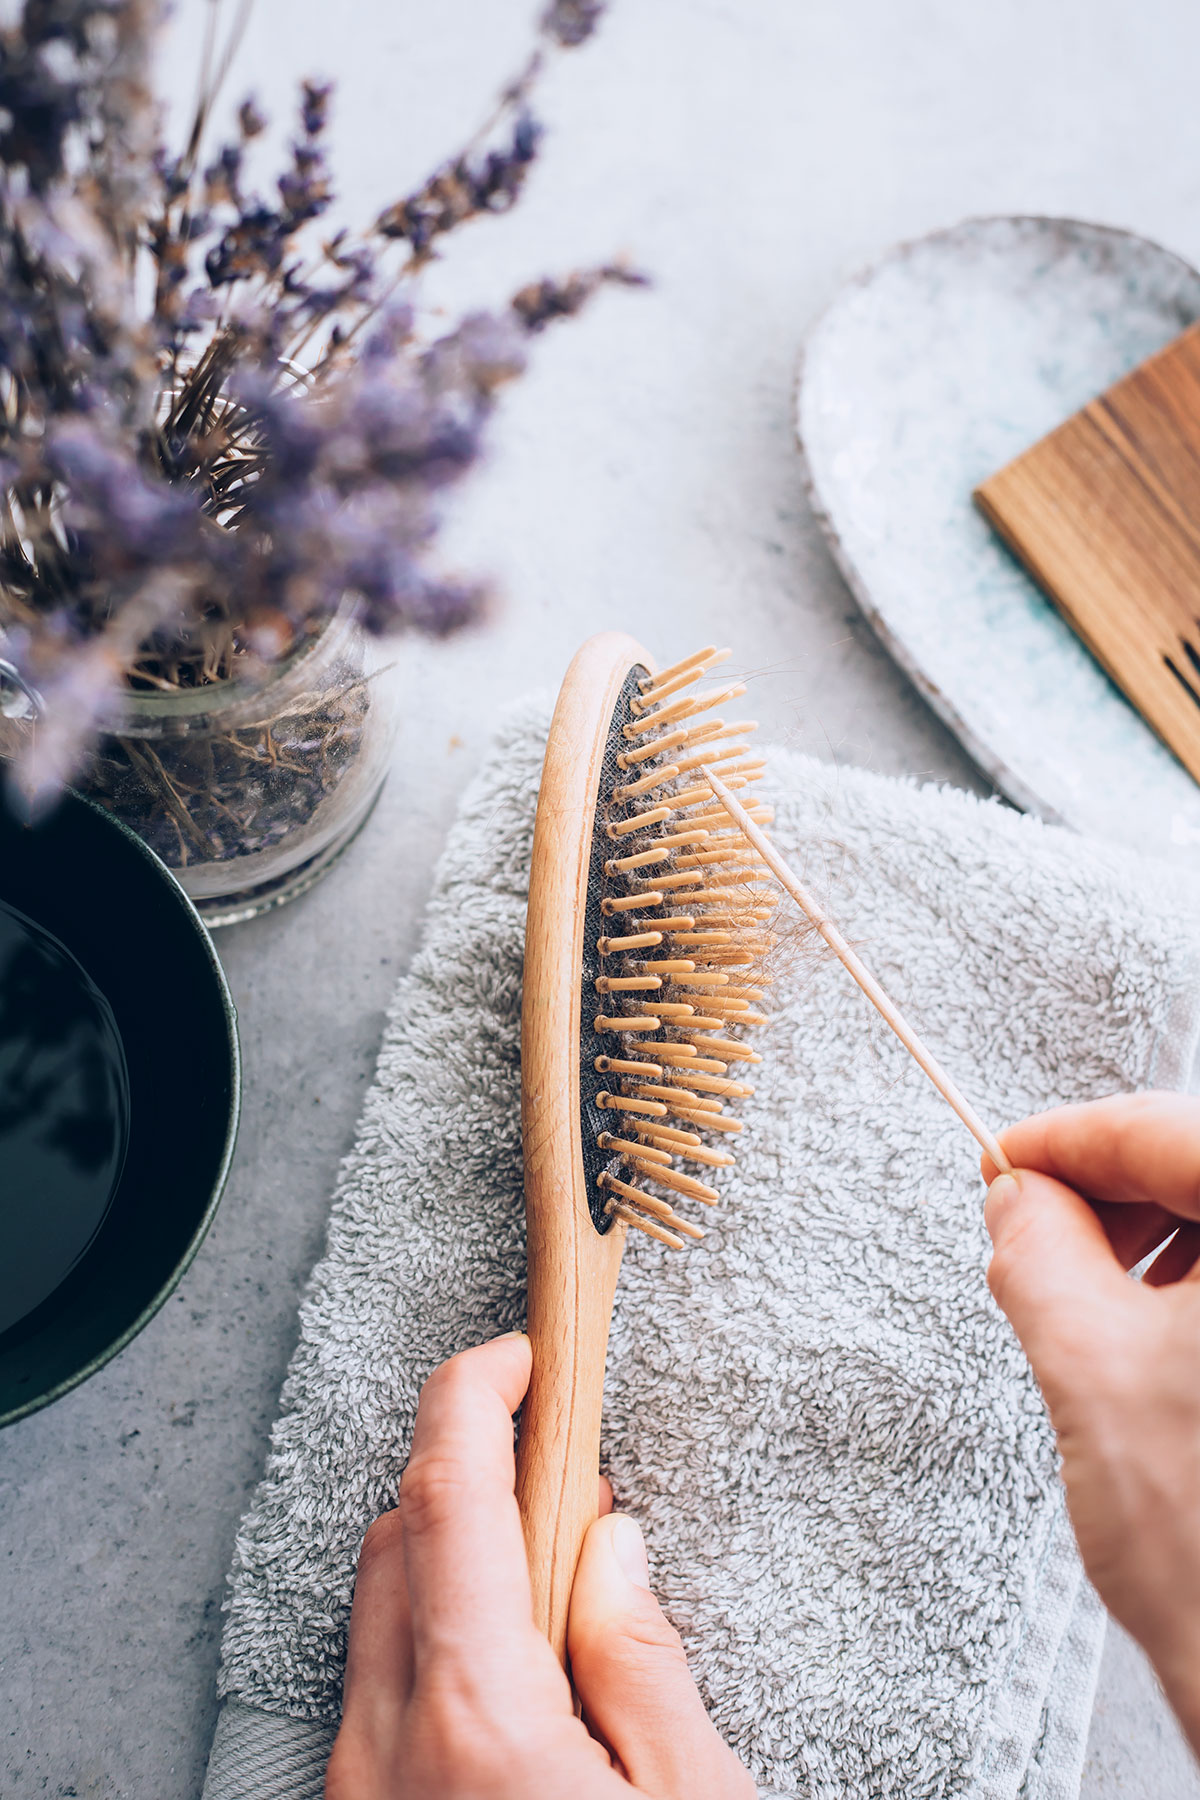 How to clean a hairbrush